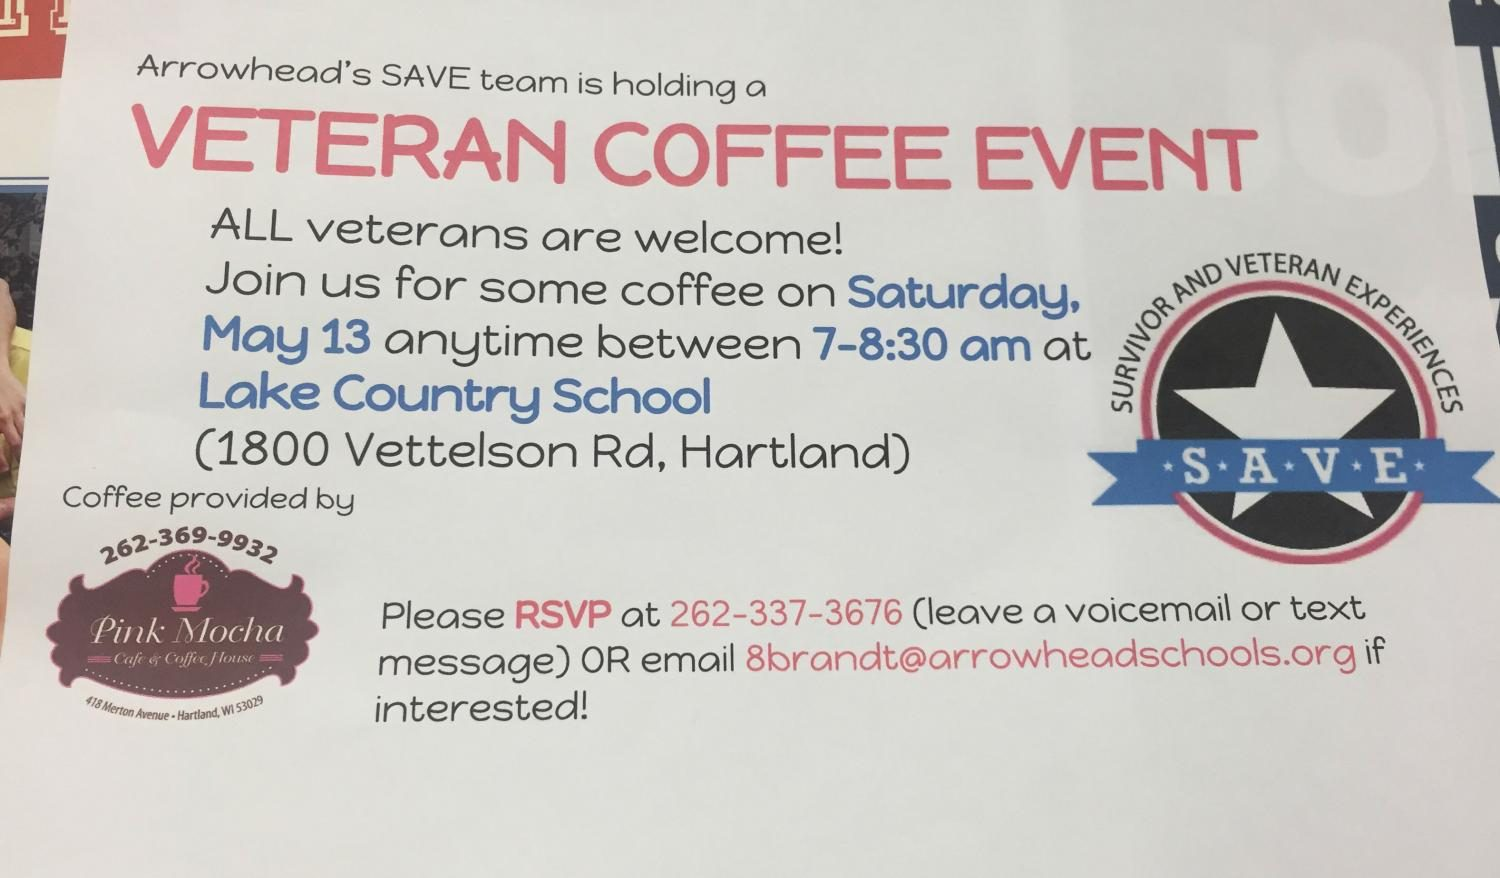 Sendiks Food Market in Hartland and Arrowheads SAVE team are honoring war veterans this month